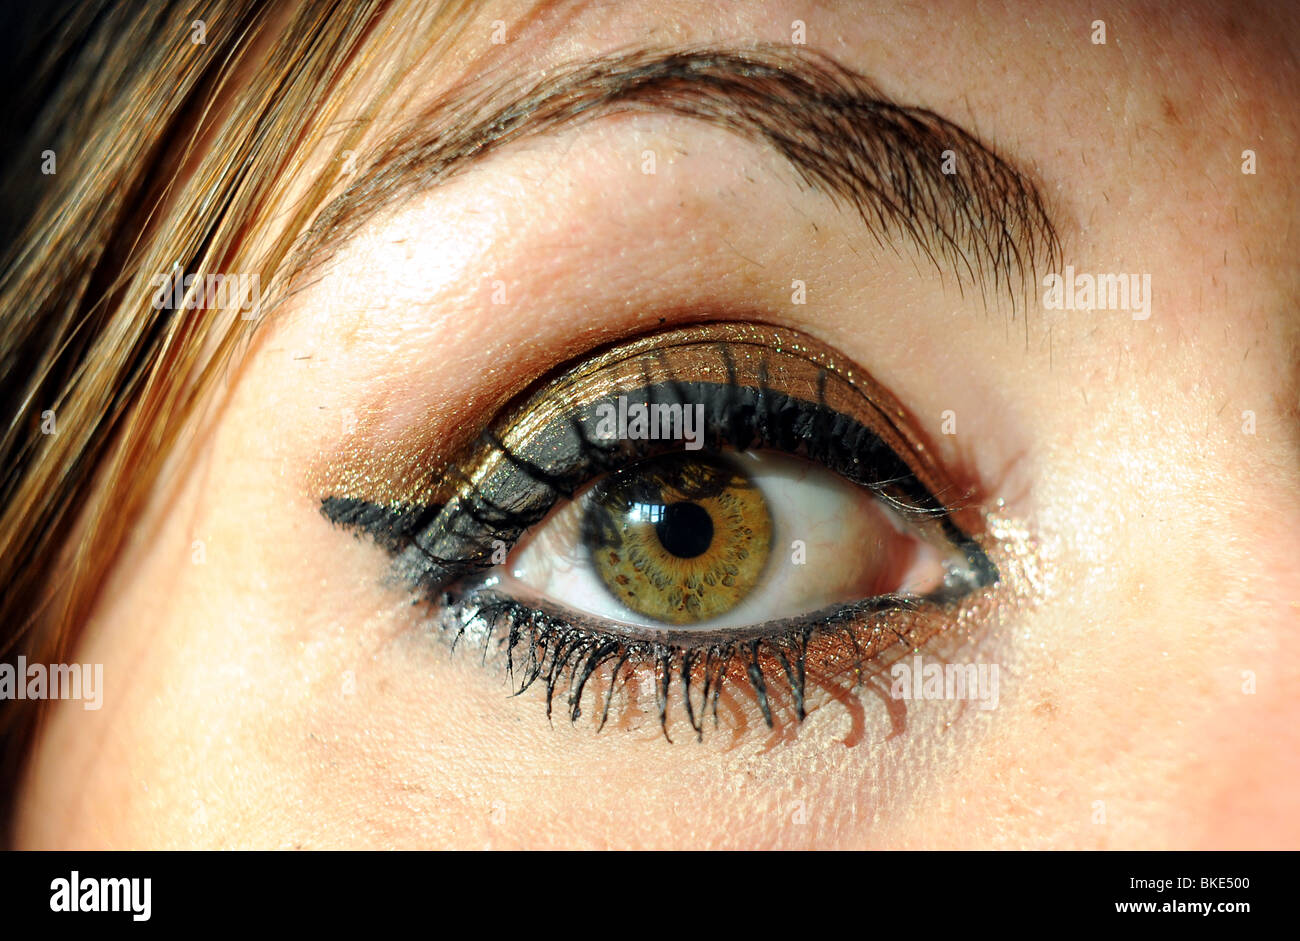 Close Up Of Female Eye Wearing Black And Gold Makeup Stock Photo